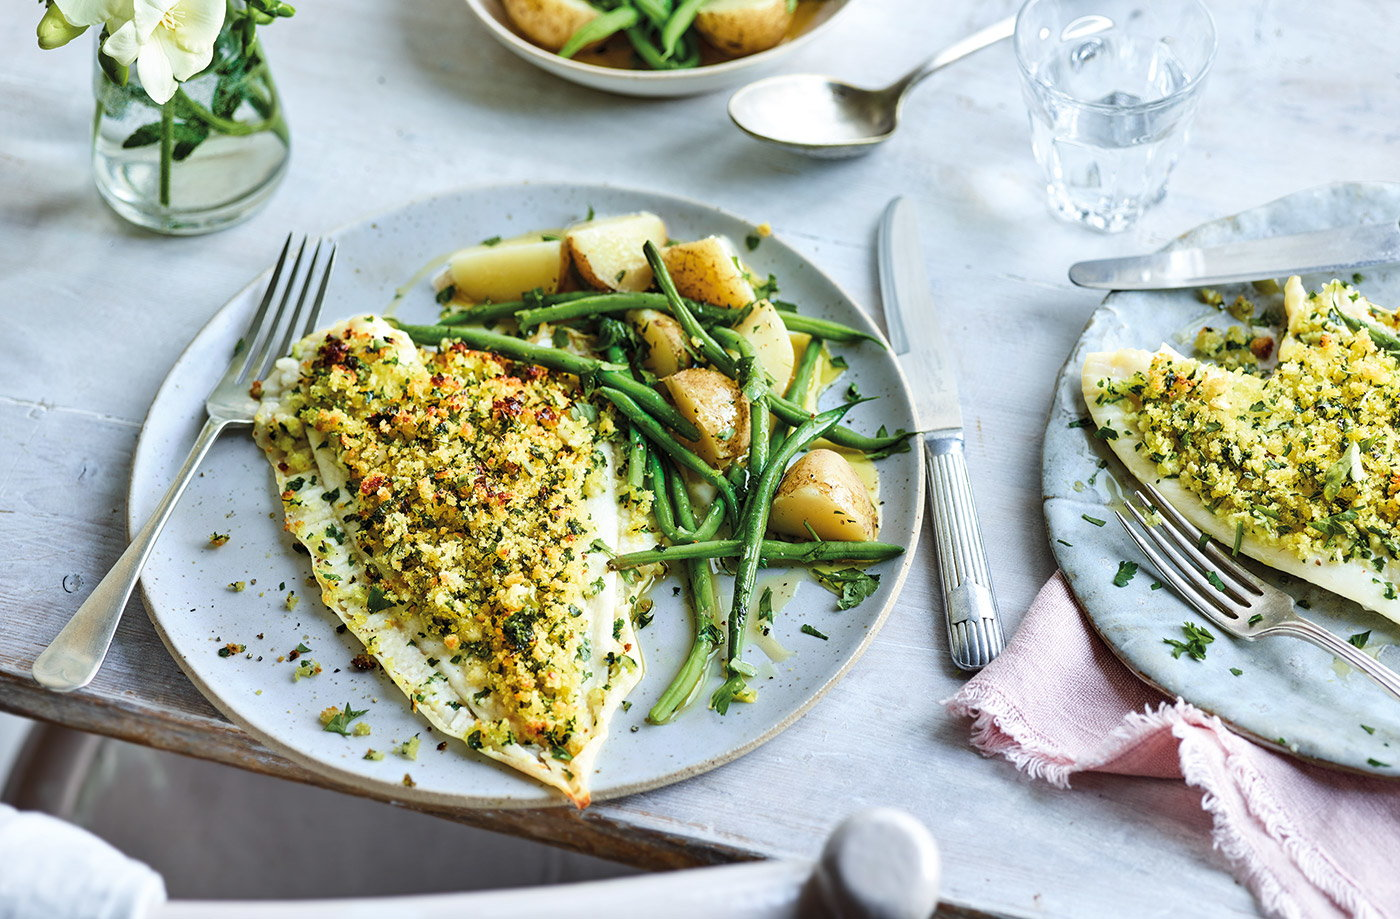 Plaice with lemon, garlic and parsley crust recipe